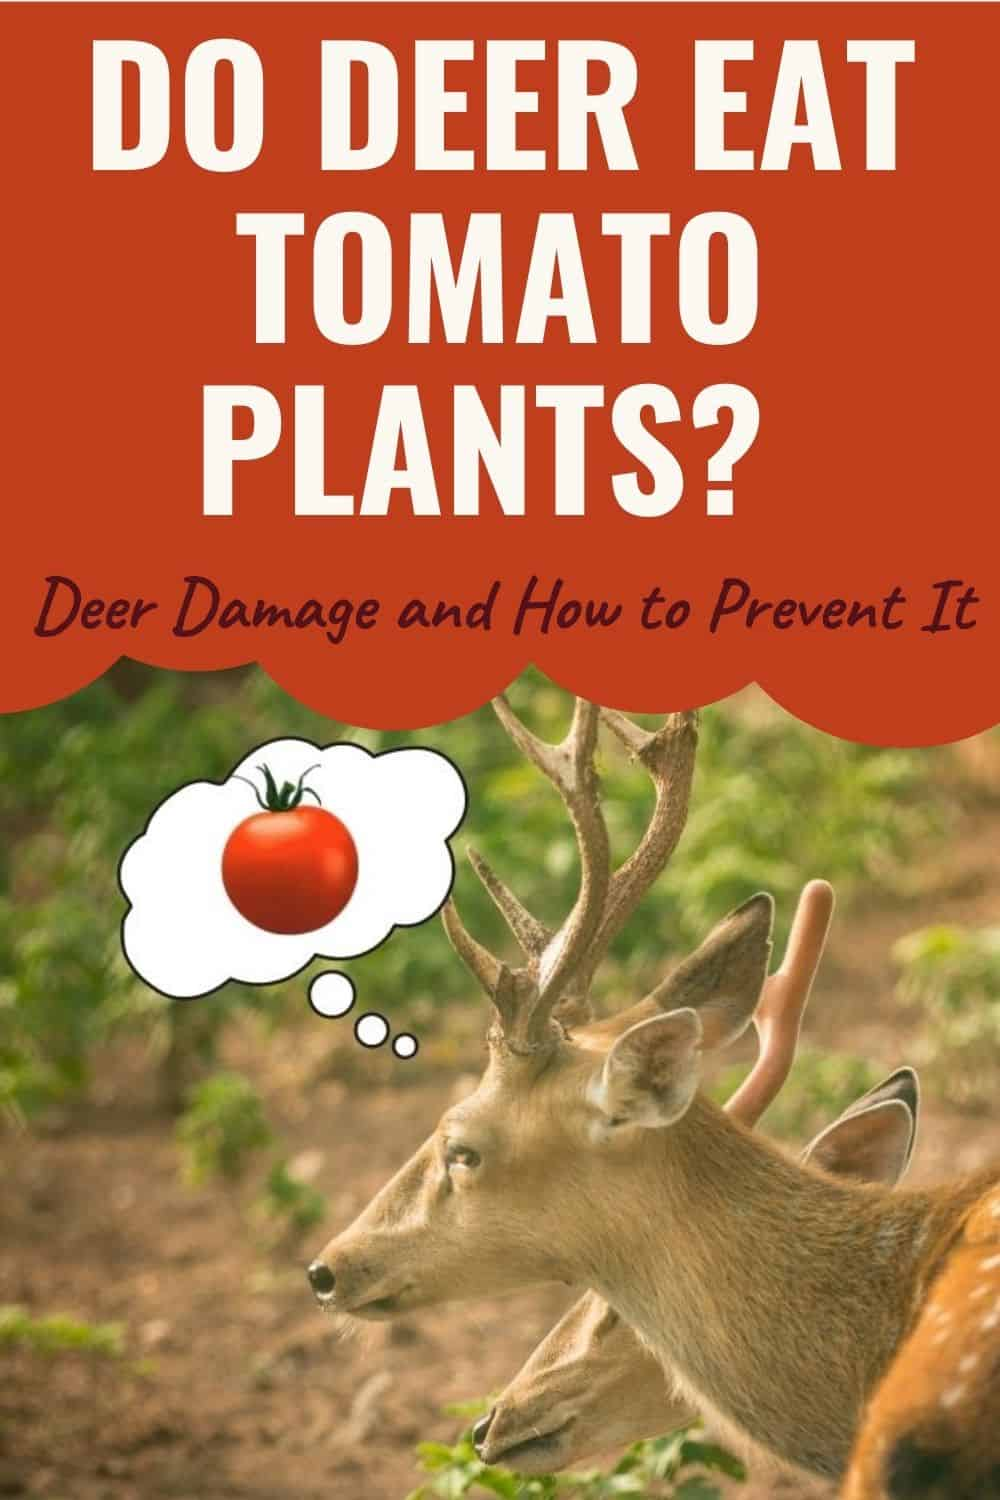 Do deer eat tomatoes and tomato plants?